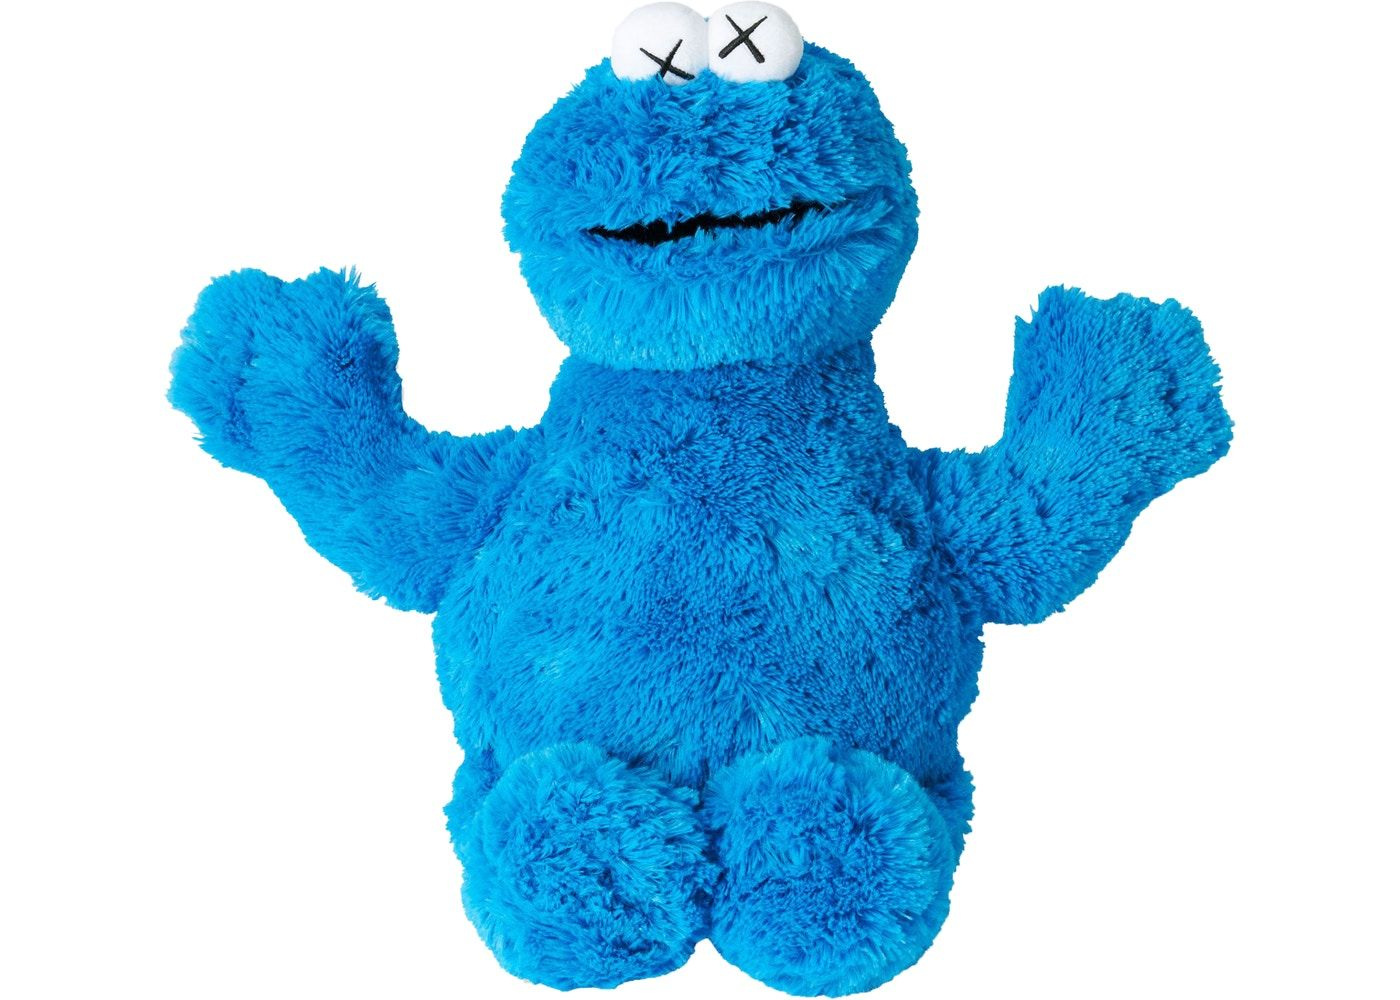 c426ddea Check out the Kaws Sesame Street Uniqlo Cookie Monster Plush Toy Blue  available on StockX